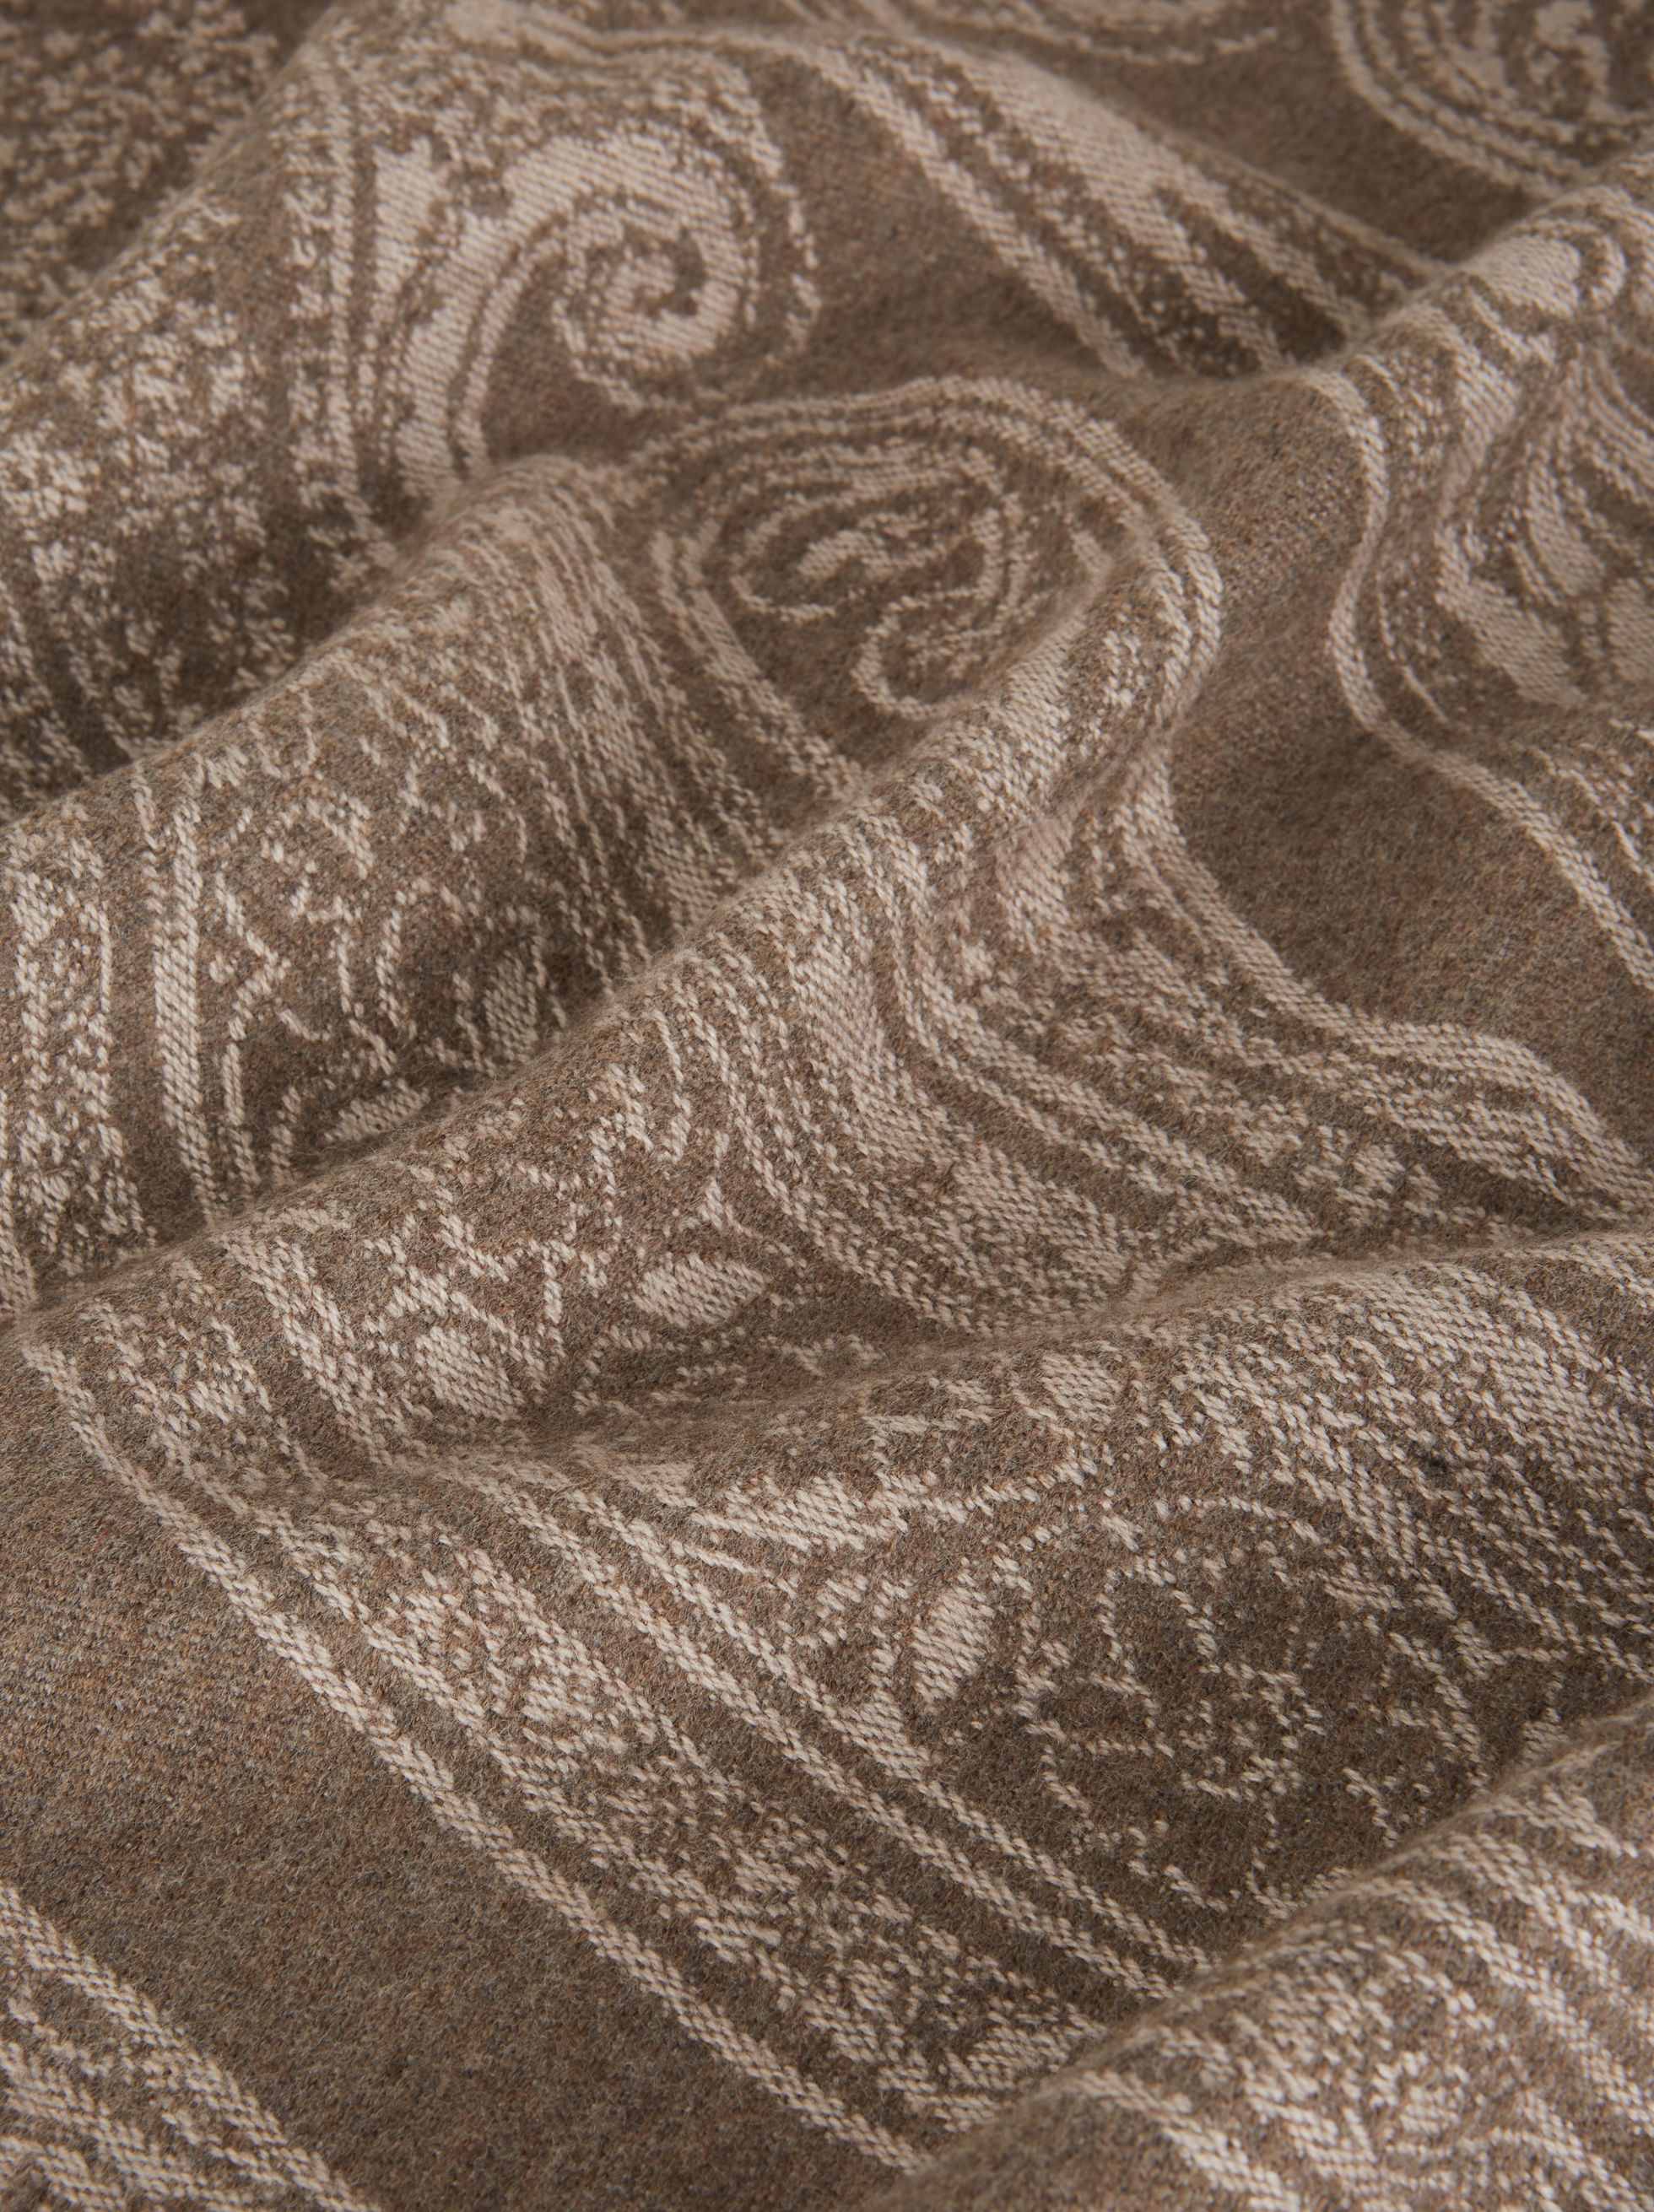 SMALL JACQUARD WOOL BLANKET WITH PAISLEY DESIGN